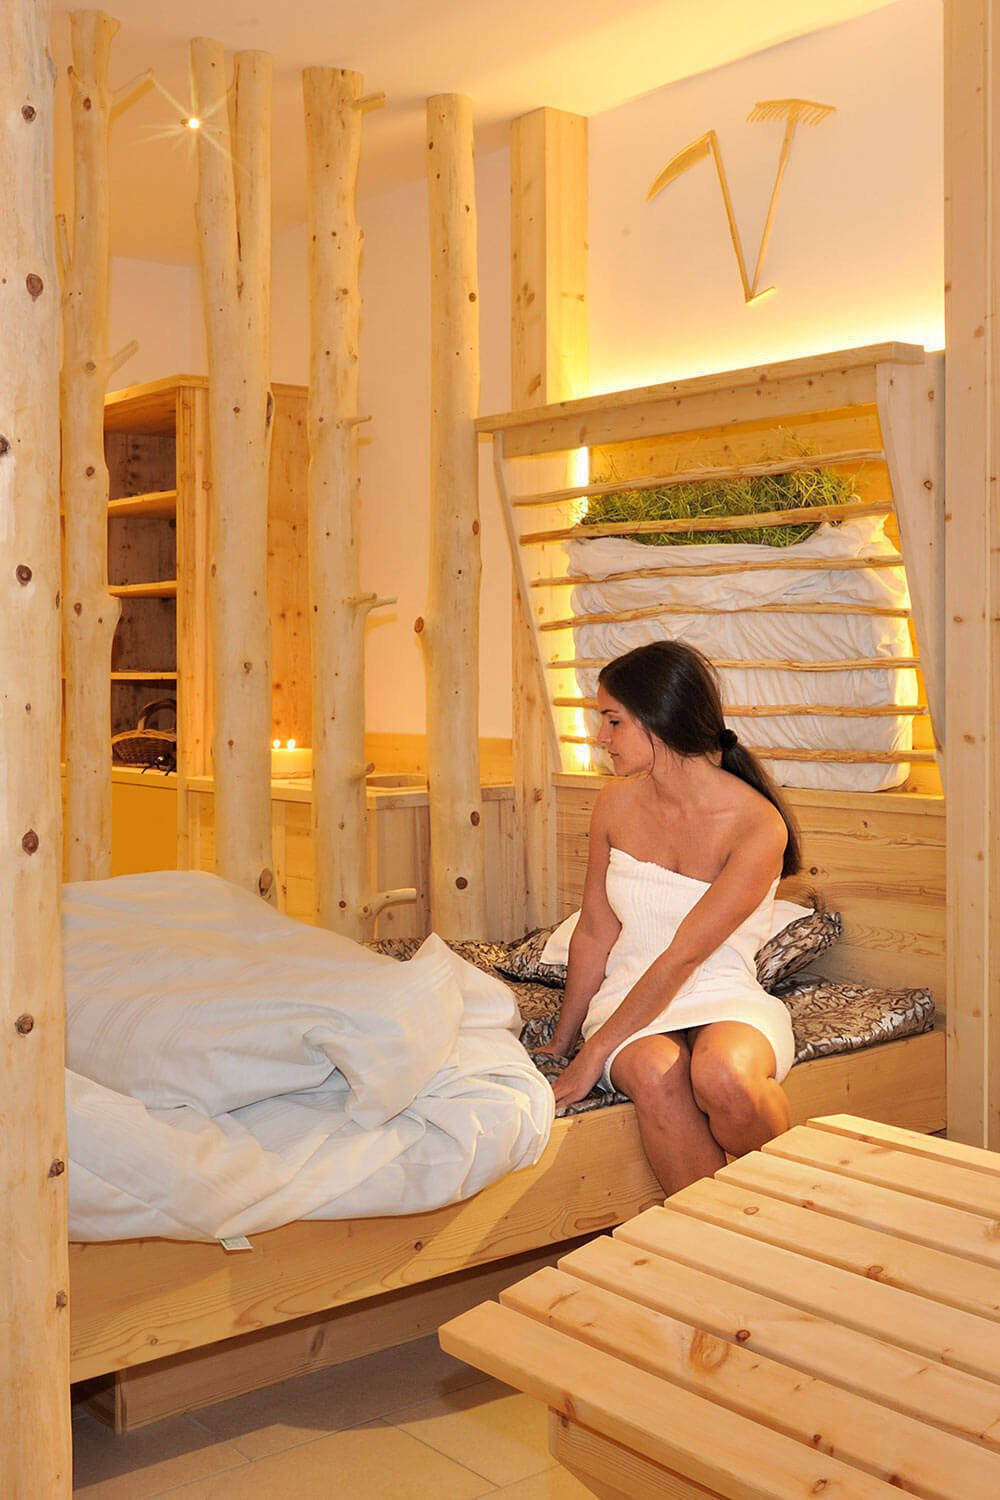 Comfort oasis at the Wellness farm in South Tyrol